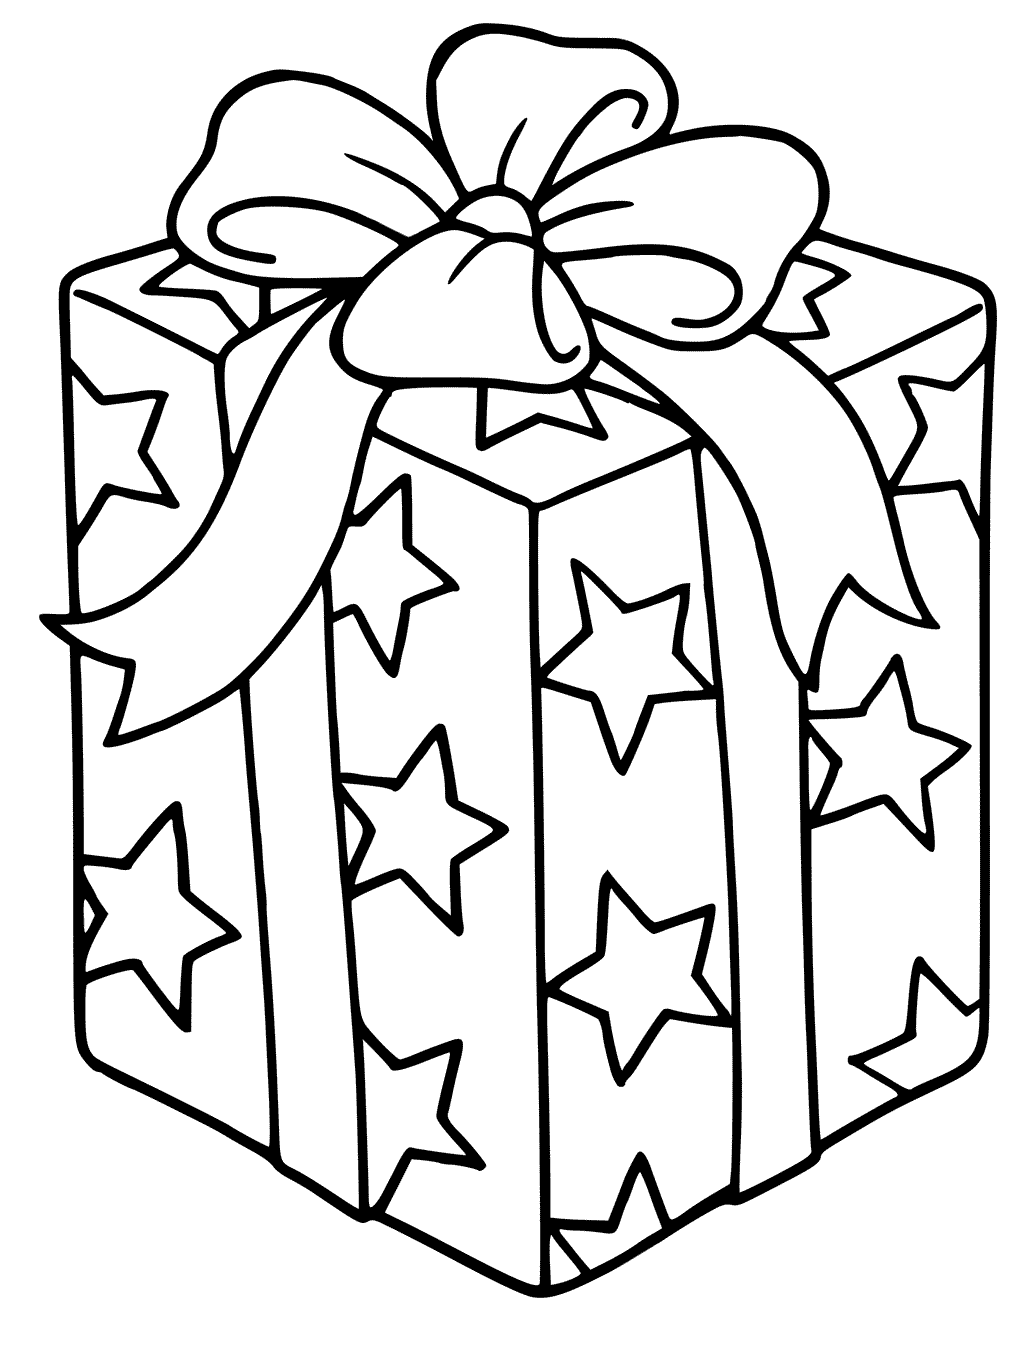 Presents Coloring Pages Best Coloring Pages For Kids